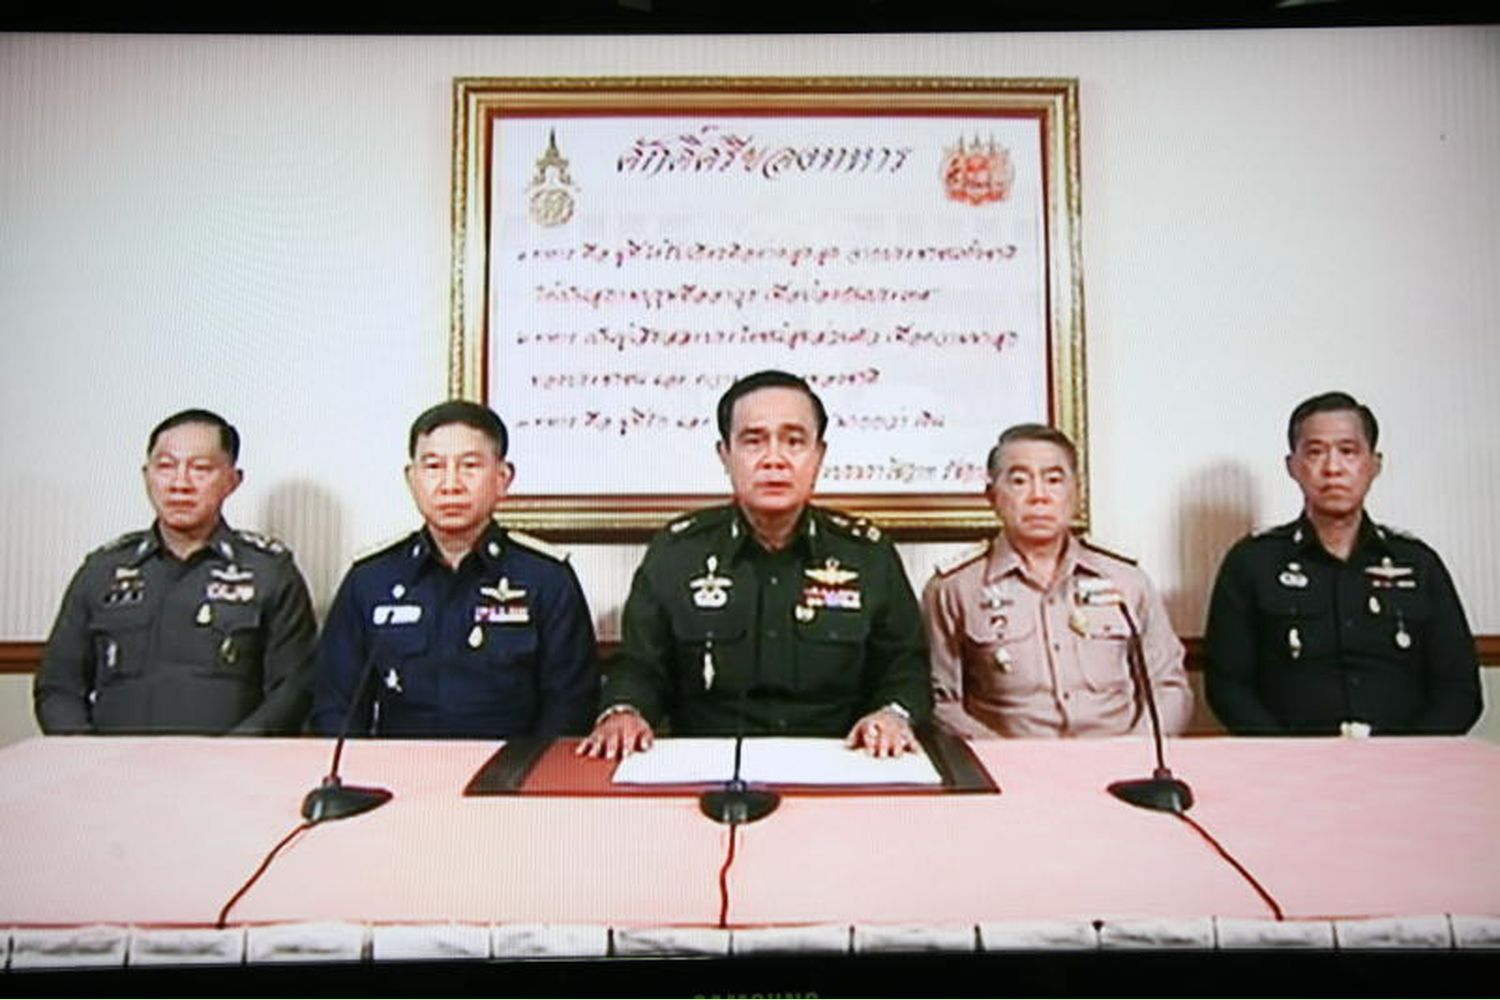 Commanders of the armed forces, led by Gen Prayut Chan-o-cha (centre), address the nation following the military coup on May 22, 2014.